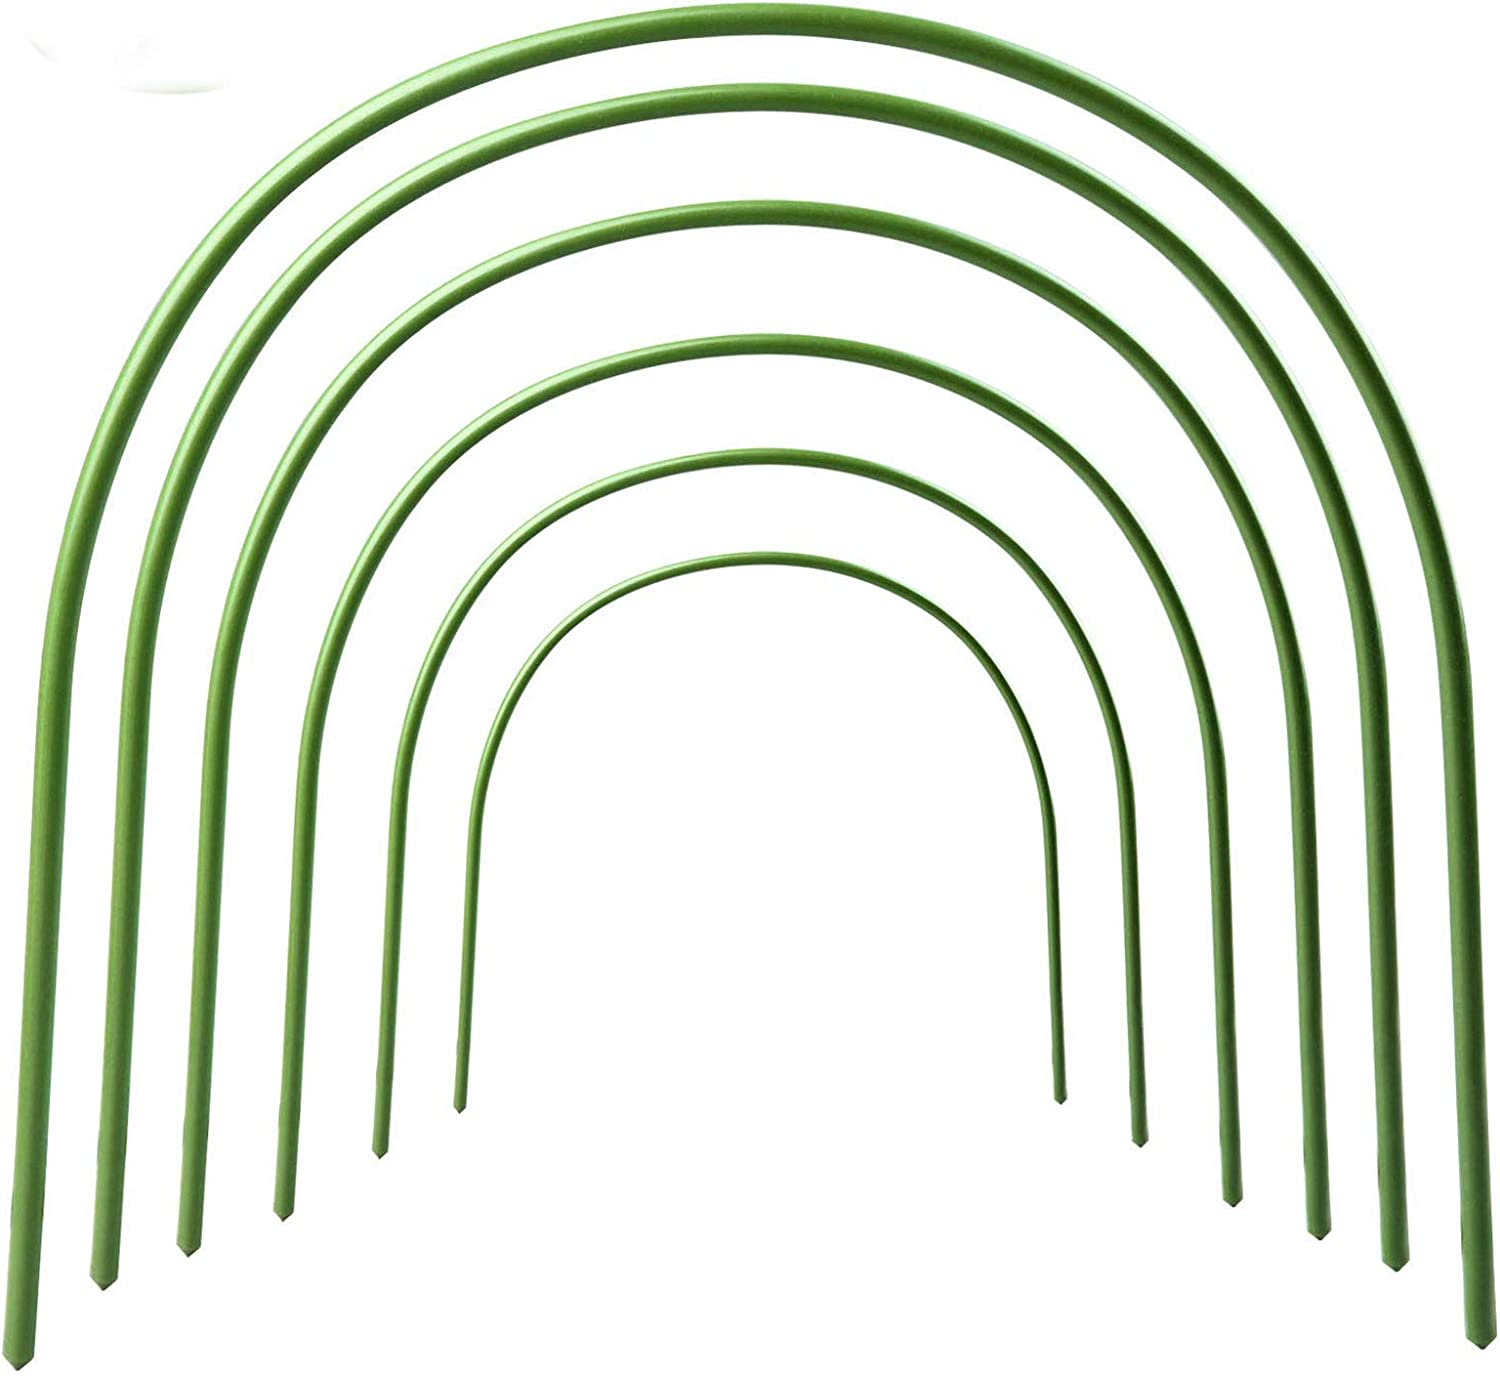 Ewer 6 PCs Greenhouse Hoops Rust-Free Grow Tunnel 4Ft Plant Support Hoops Long Steel with Plastic Coated Hoops for Plant Cover Support and Garden Fabric, 19.7 H x 15.7 W